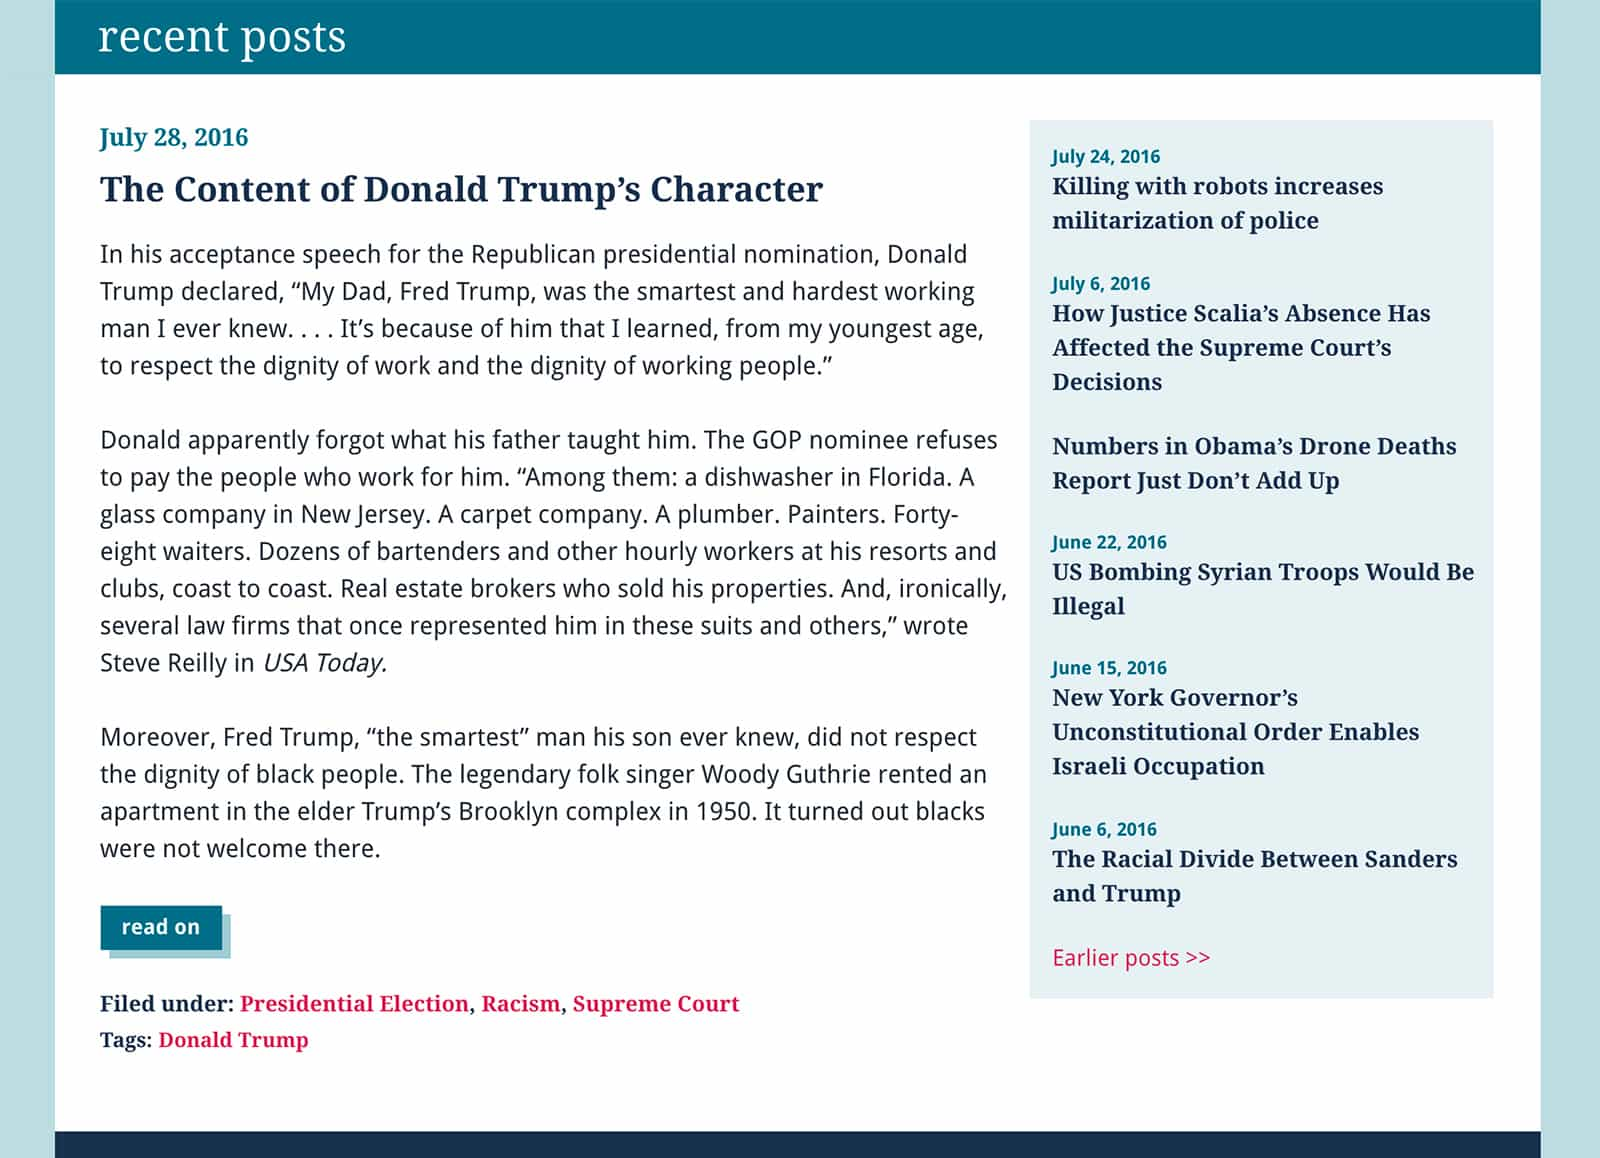 The Content of Donald Trumps character